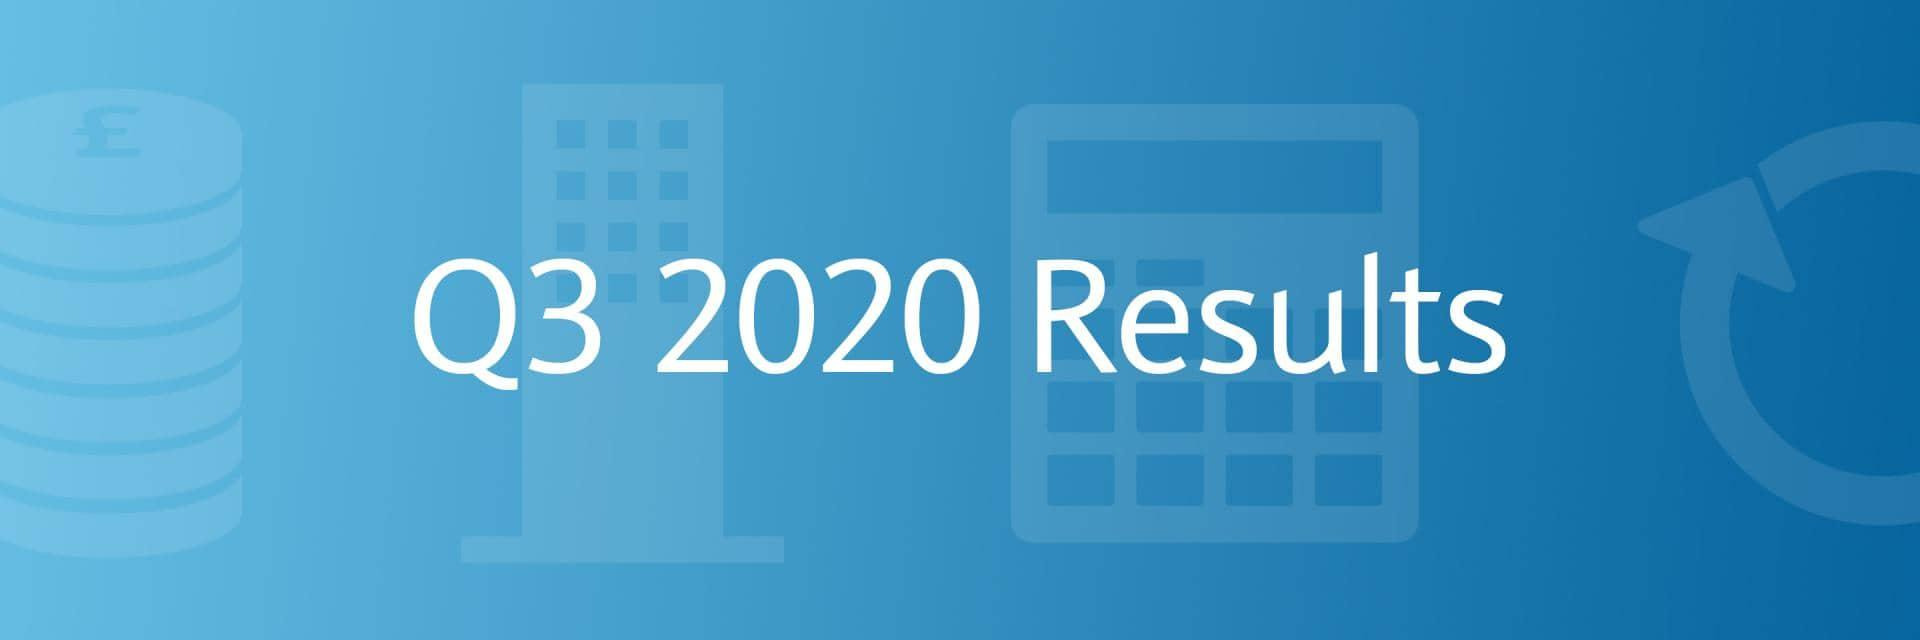 Barclays Q3 Results 2020